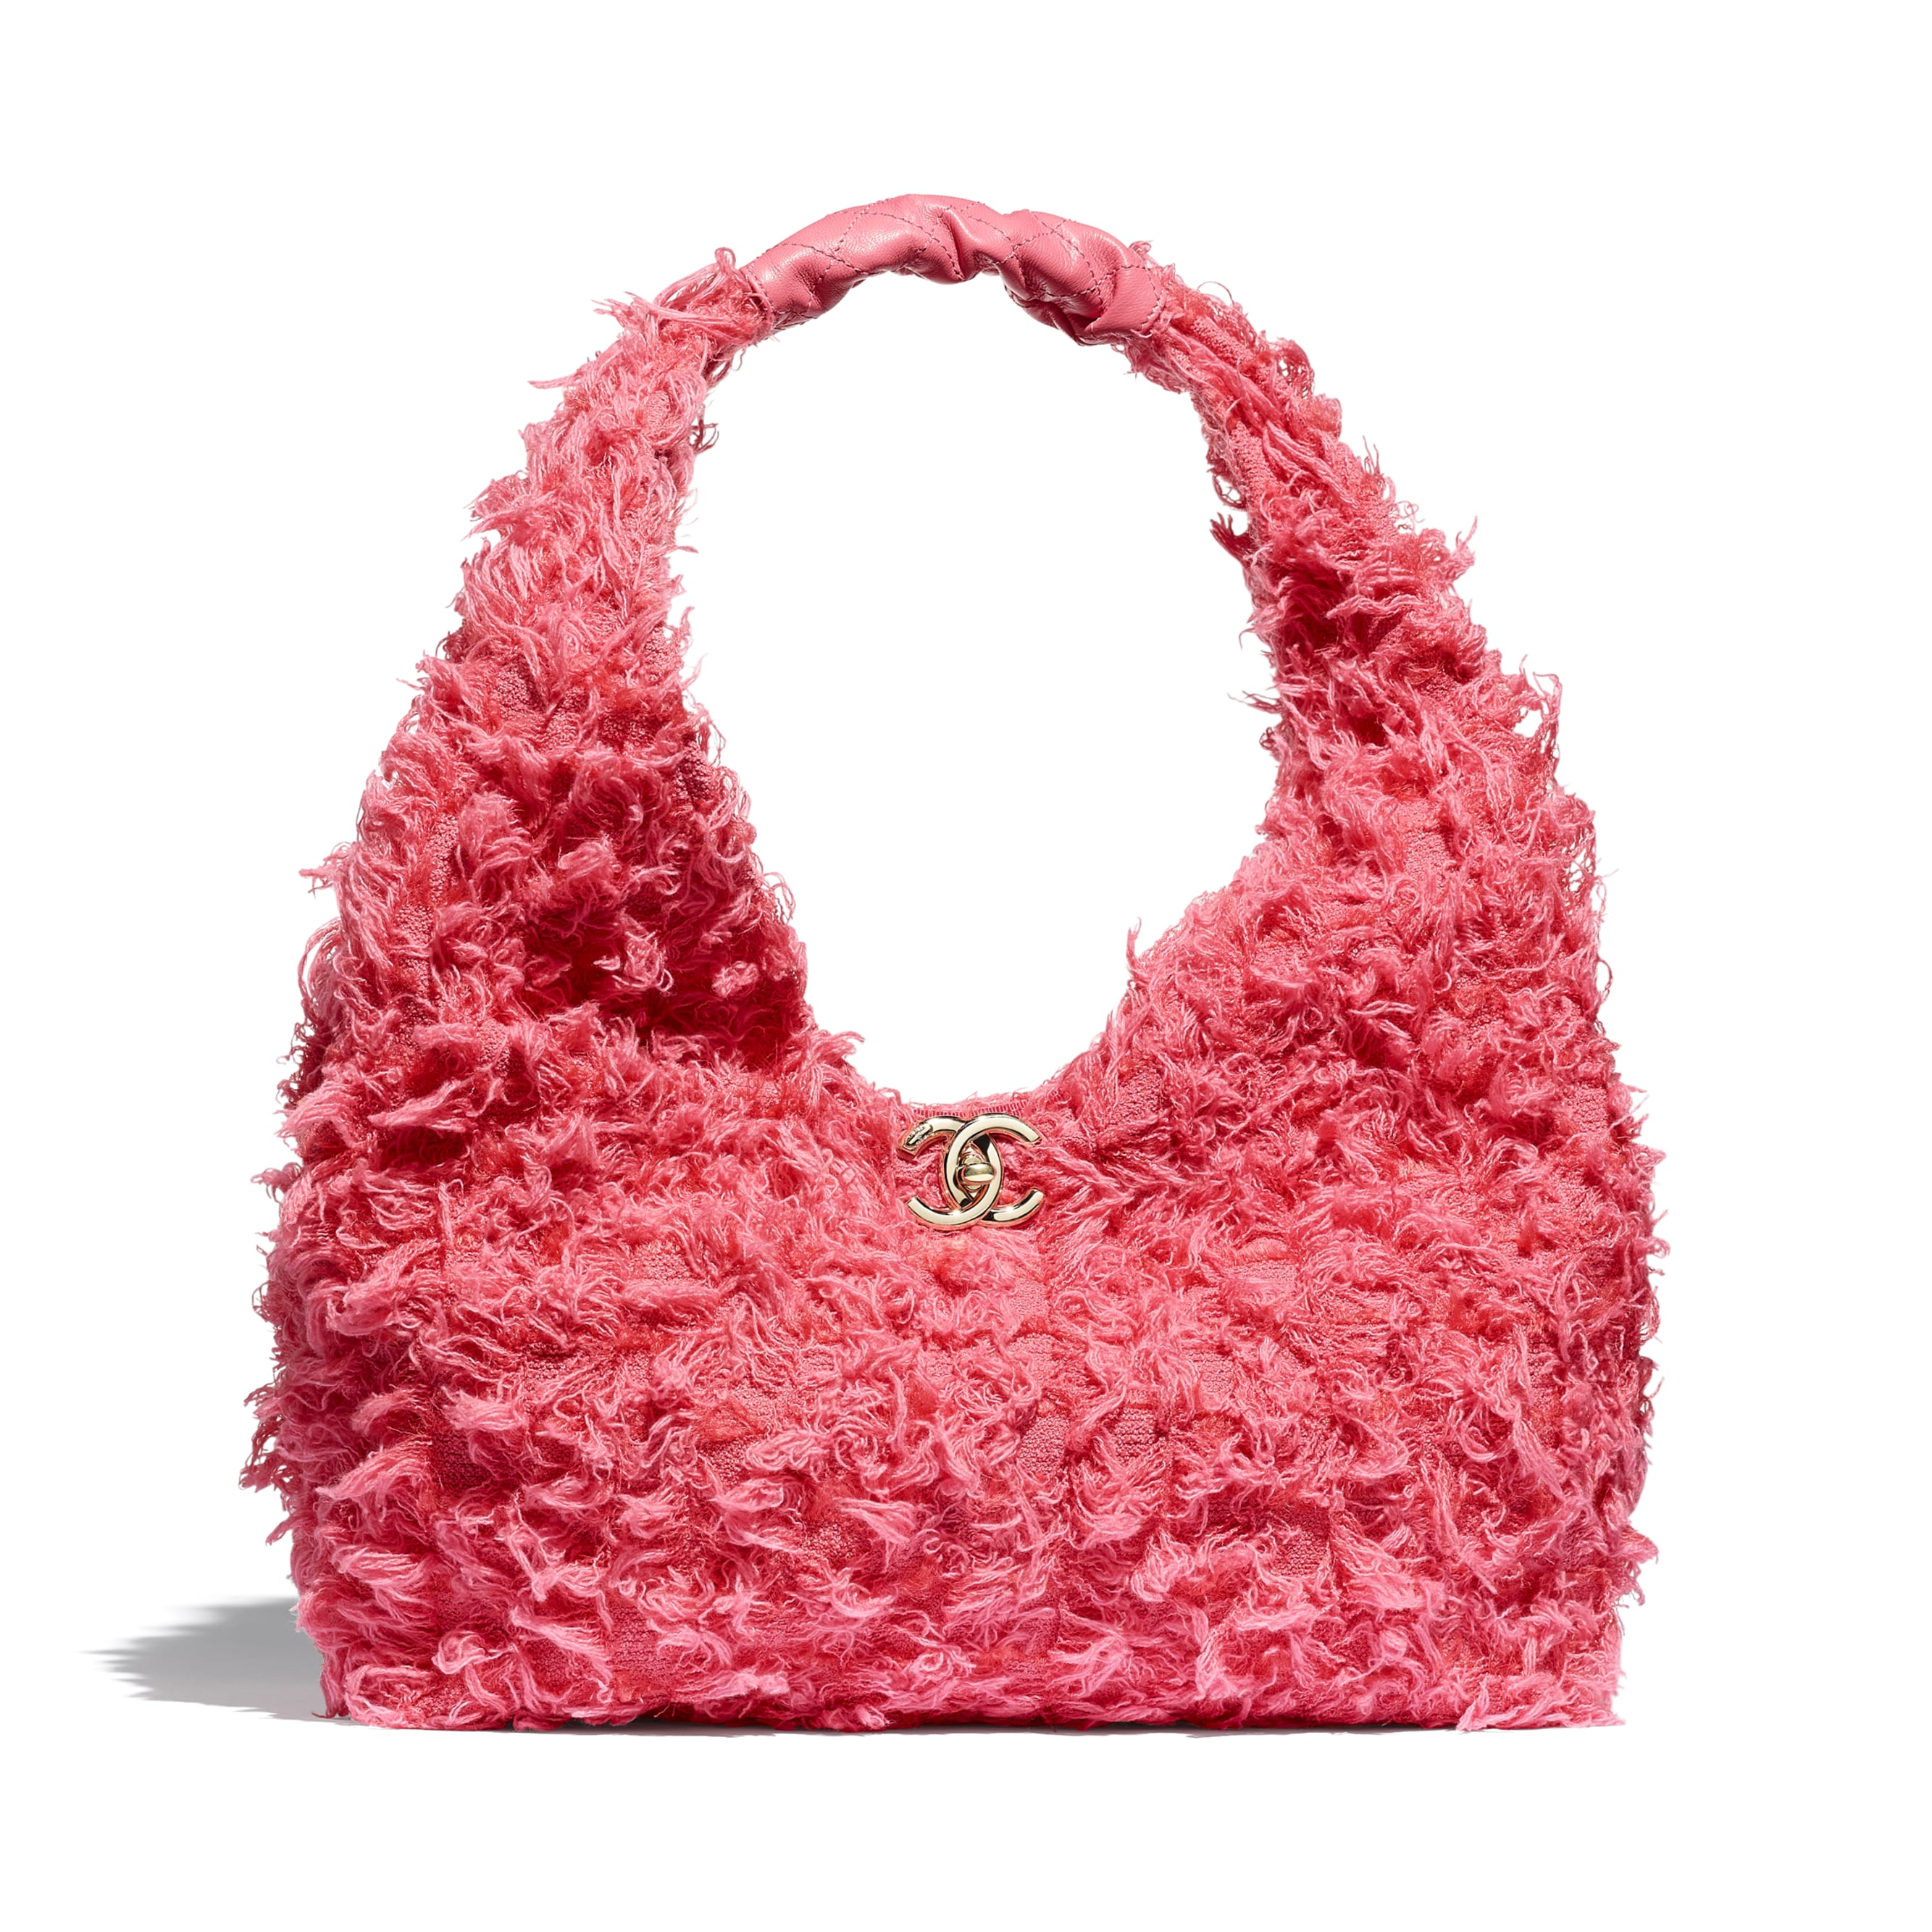 Small Hobo Bag - Coral - Tweed, Calfskin & Gold-Tone Metal - CHANEL - Default view - see standard sized version